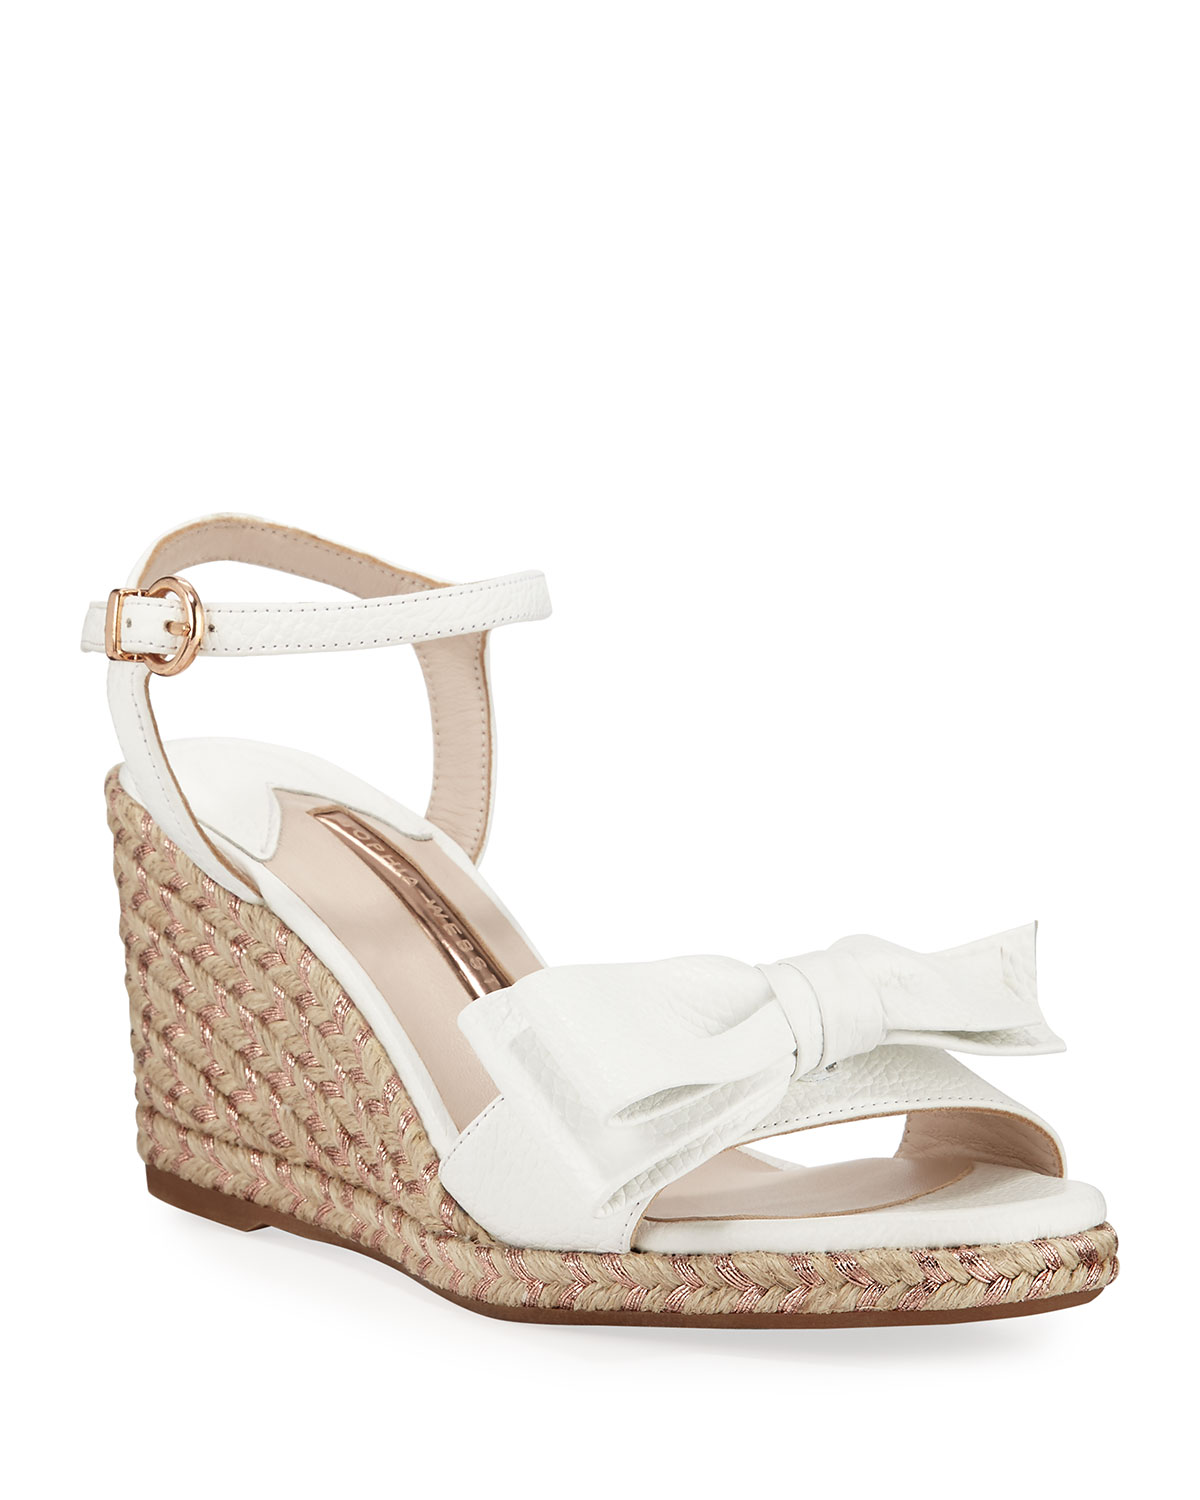 Sophia Webster Wedges BONNIE MID-WEDGE BOW ESPADRILLES